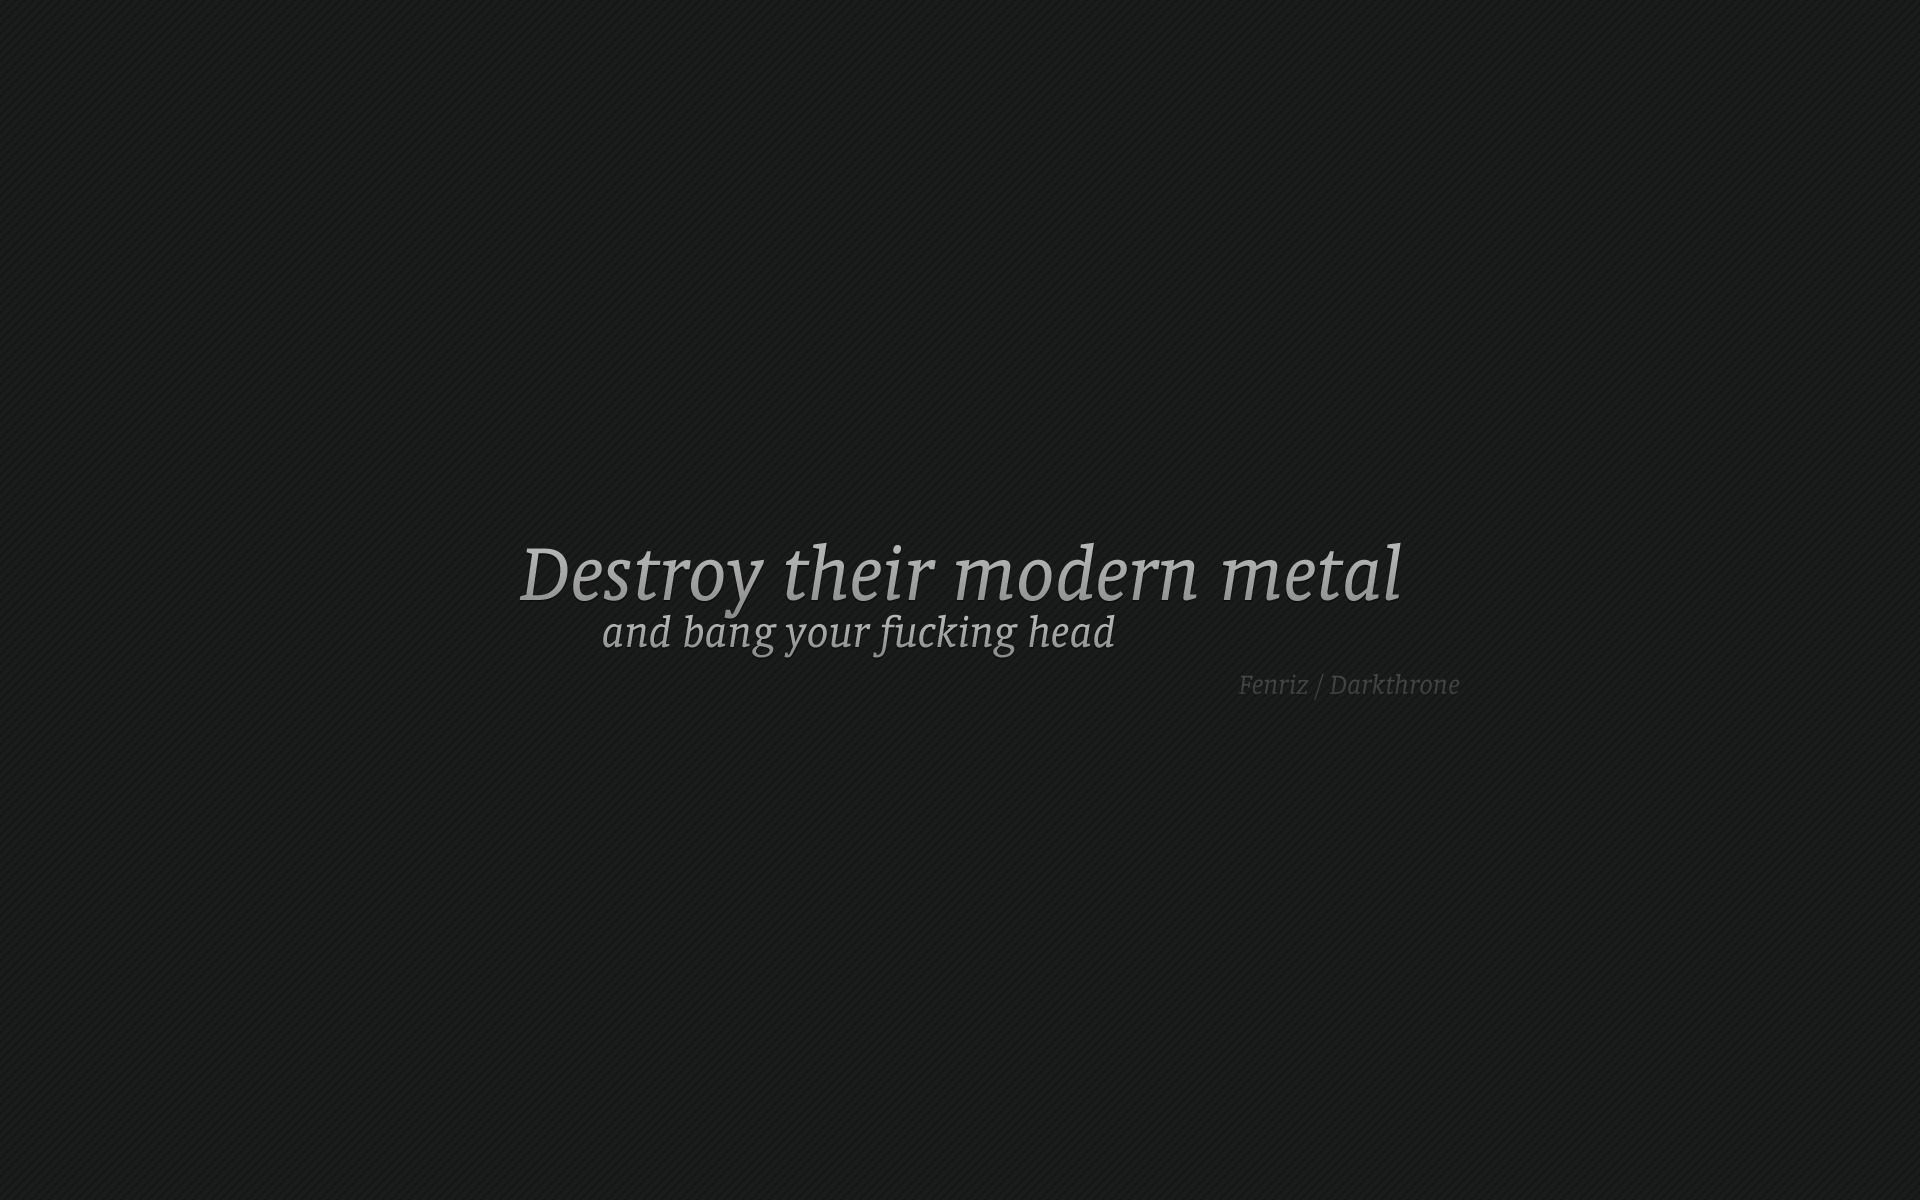 1920x1080 Metal Music Wallpapers Group 1024A 768 Heavy 40